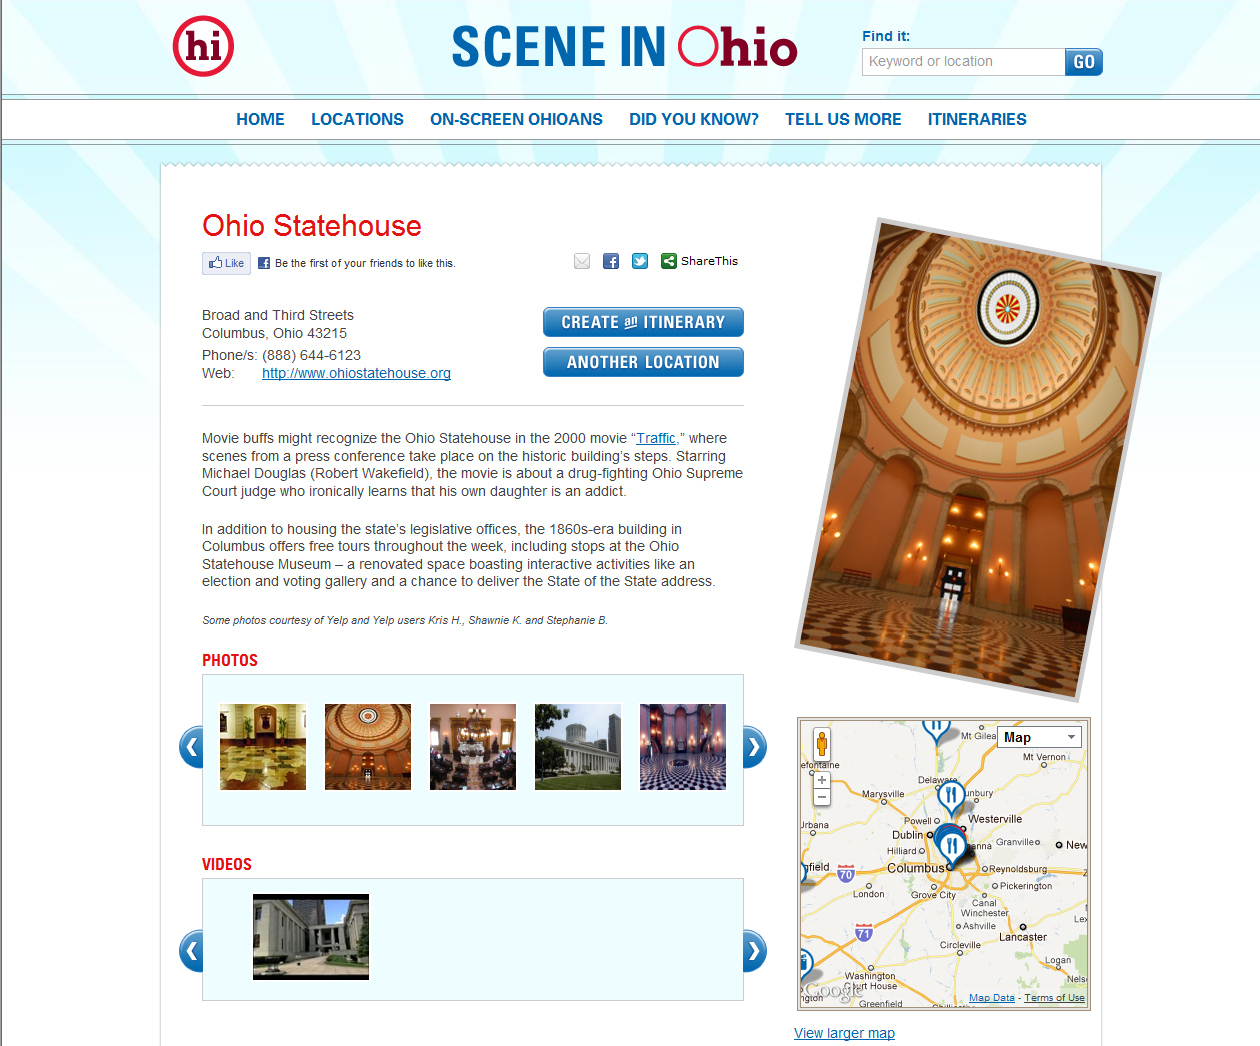 Scene in Ohio Sample Location Page